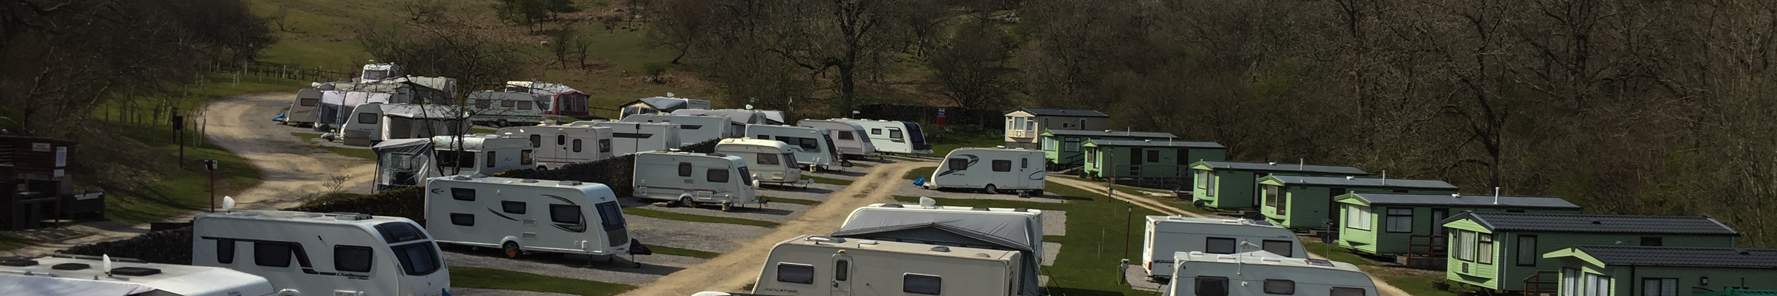 strip touring caravan site